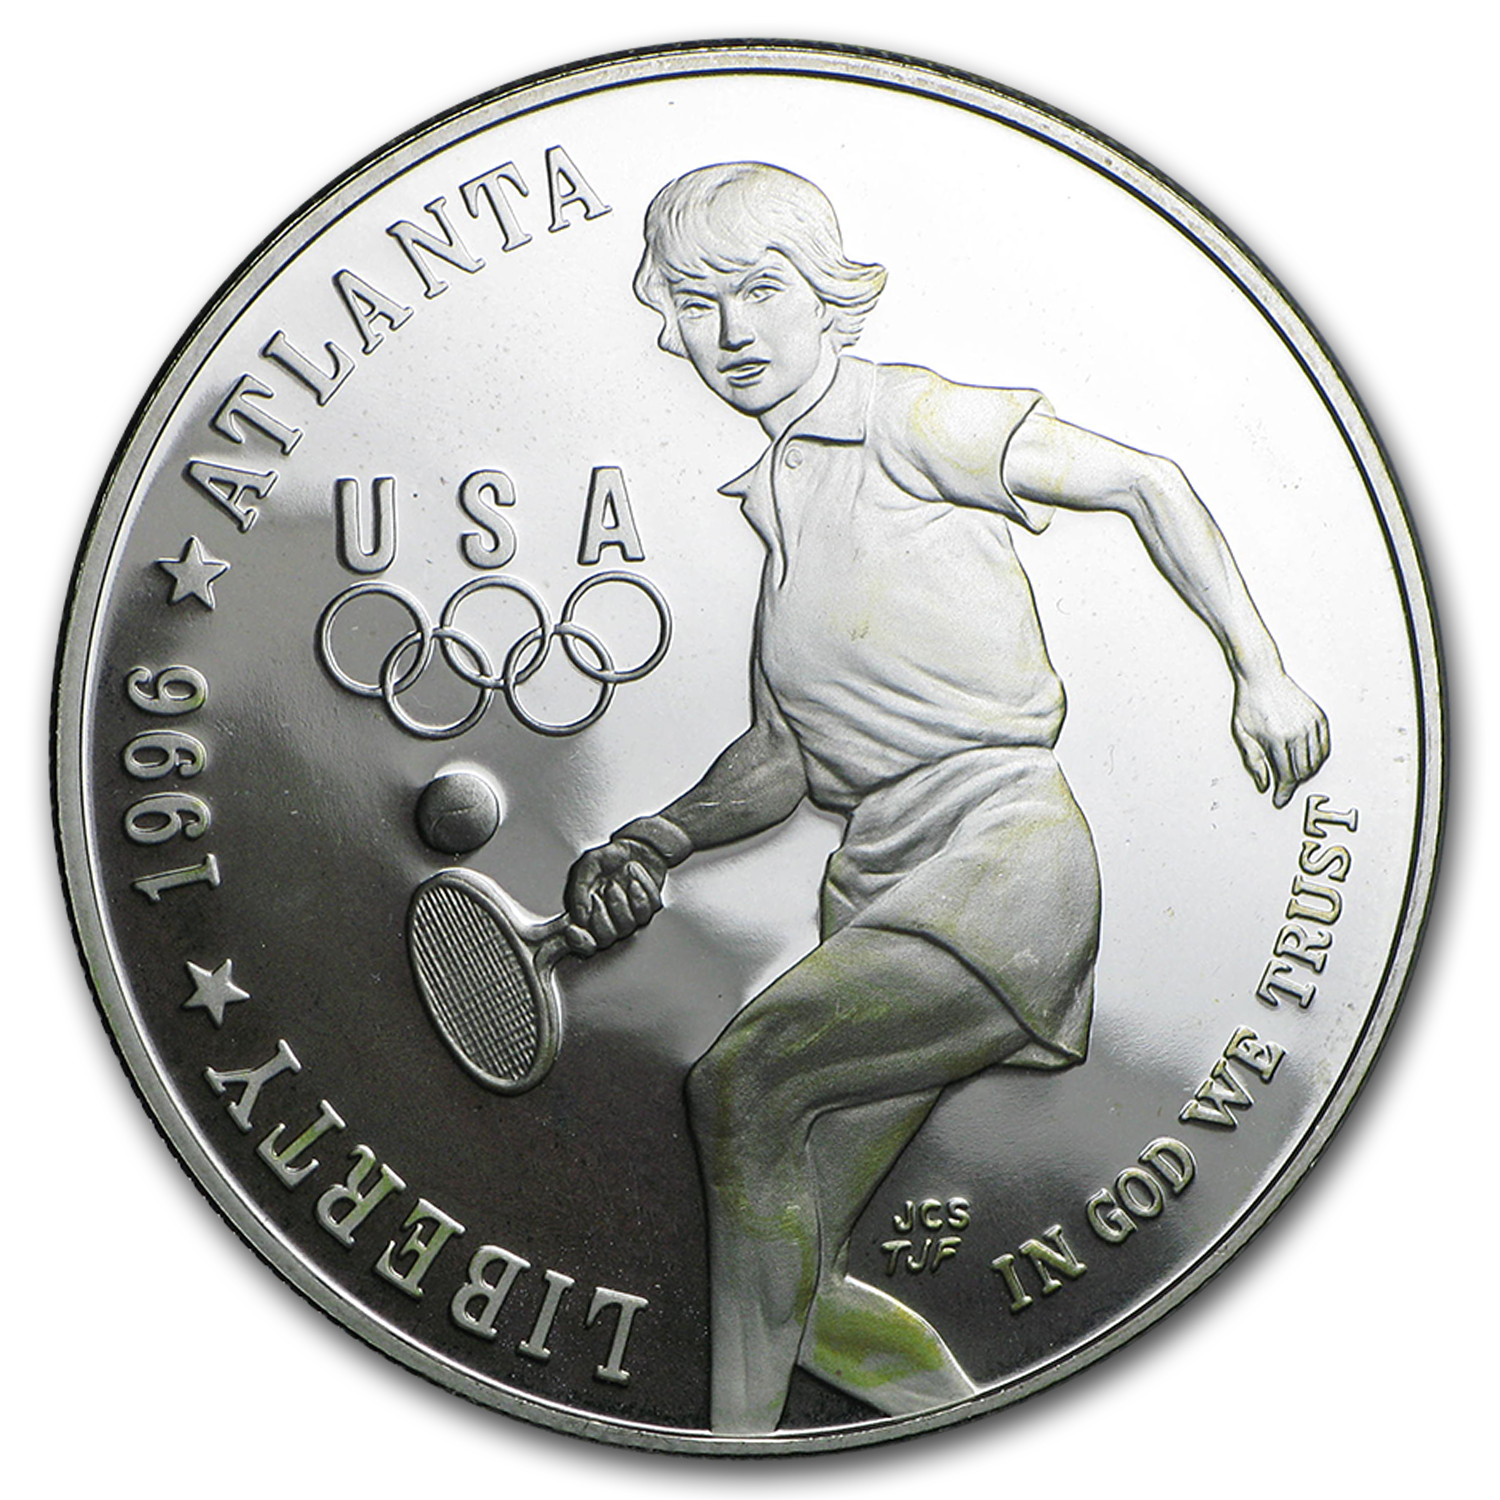 1996-P Olympic Tennis $1 Silver Commem Proof (Capsule only)